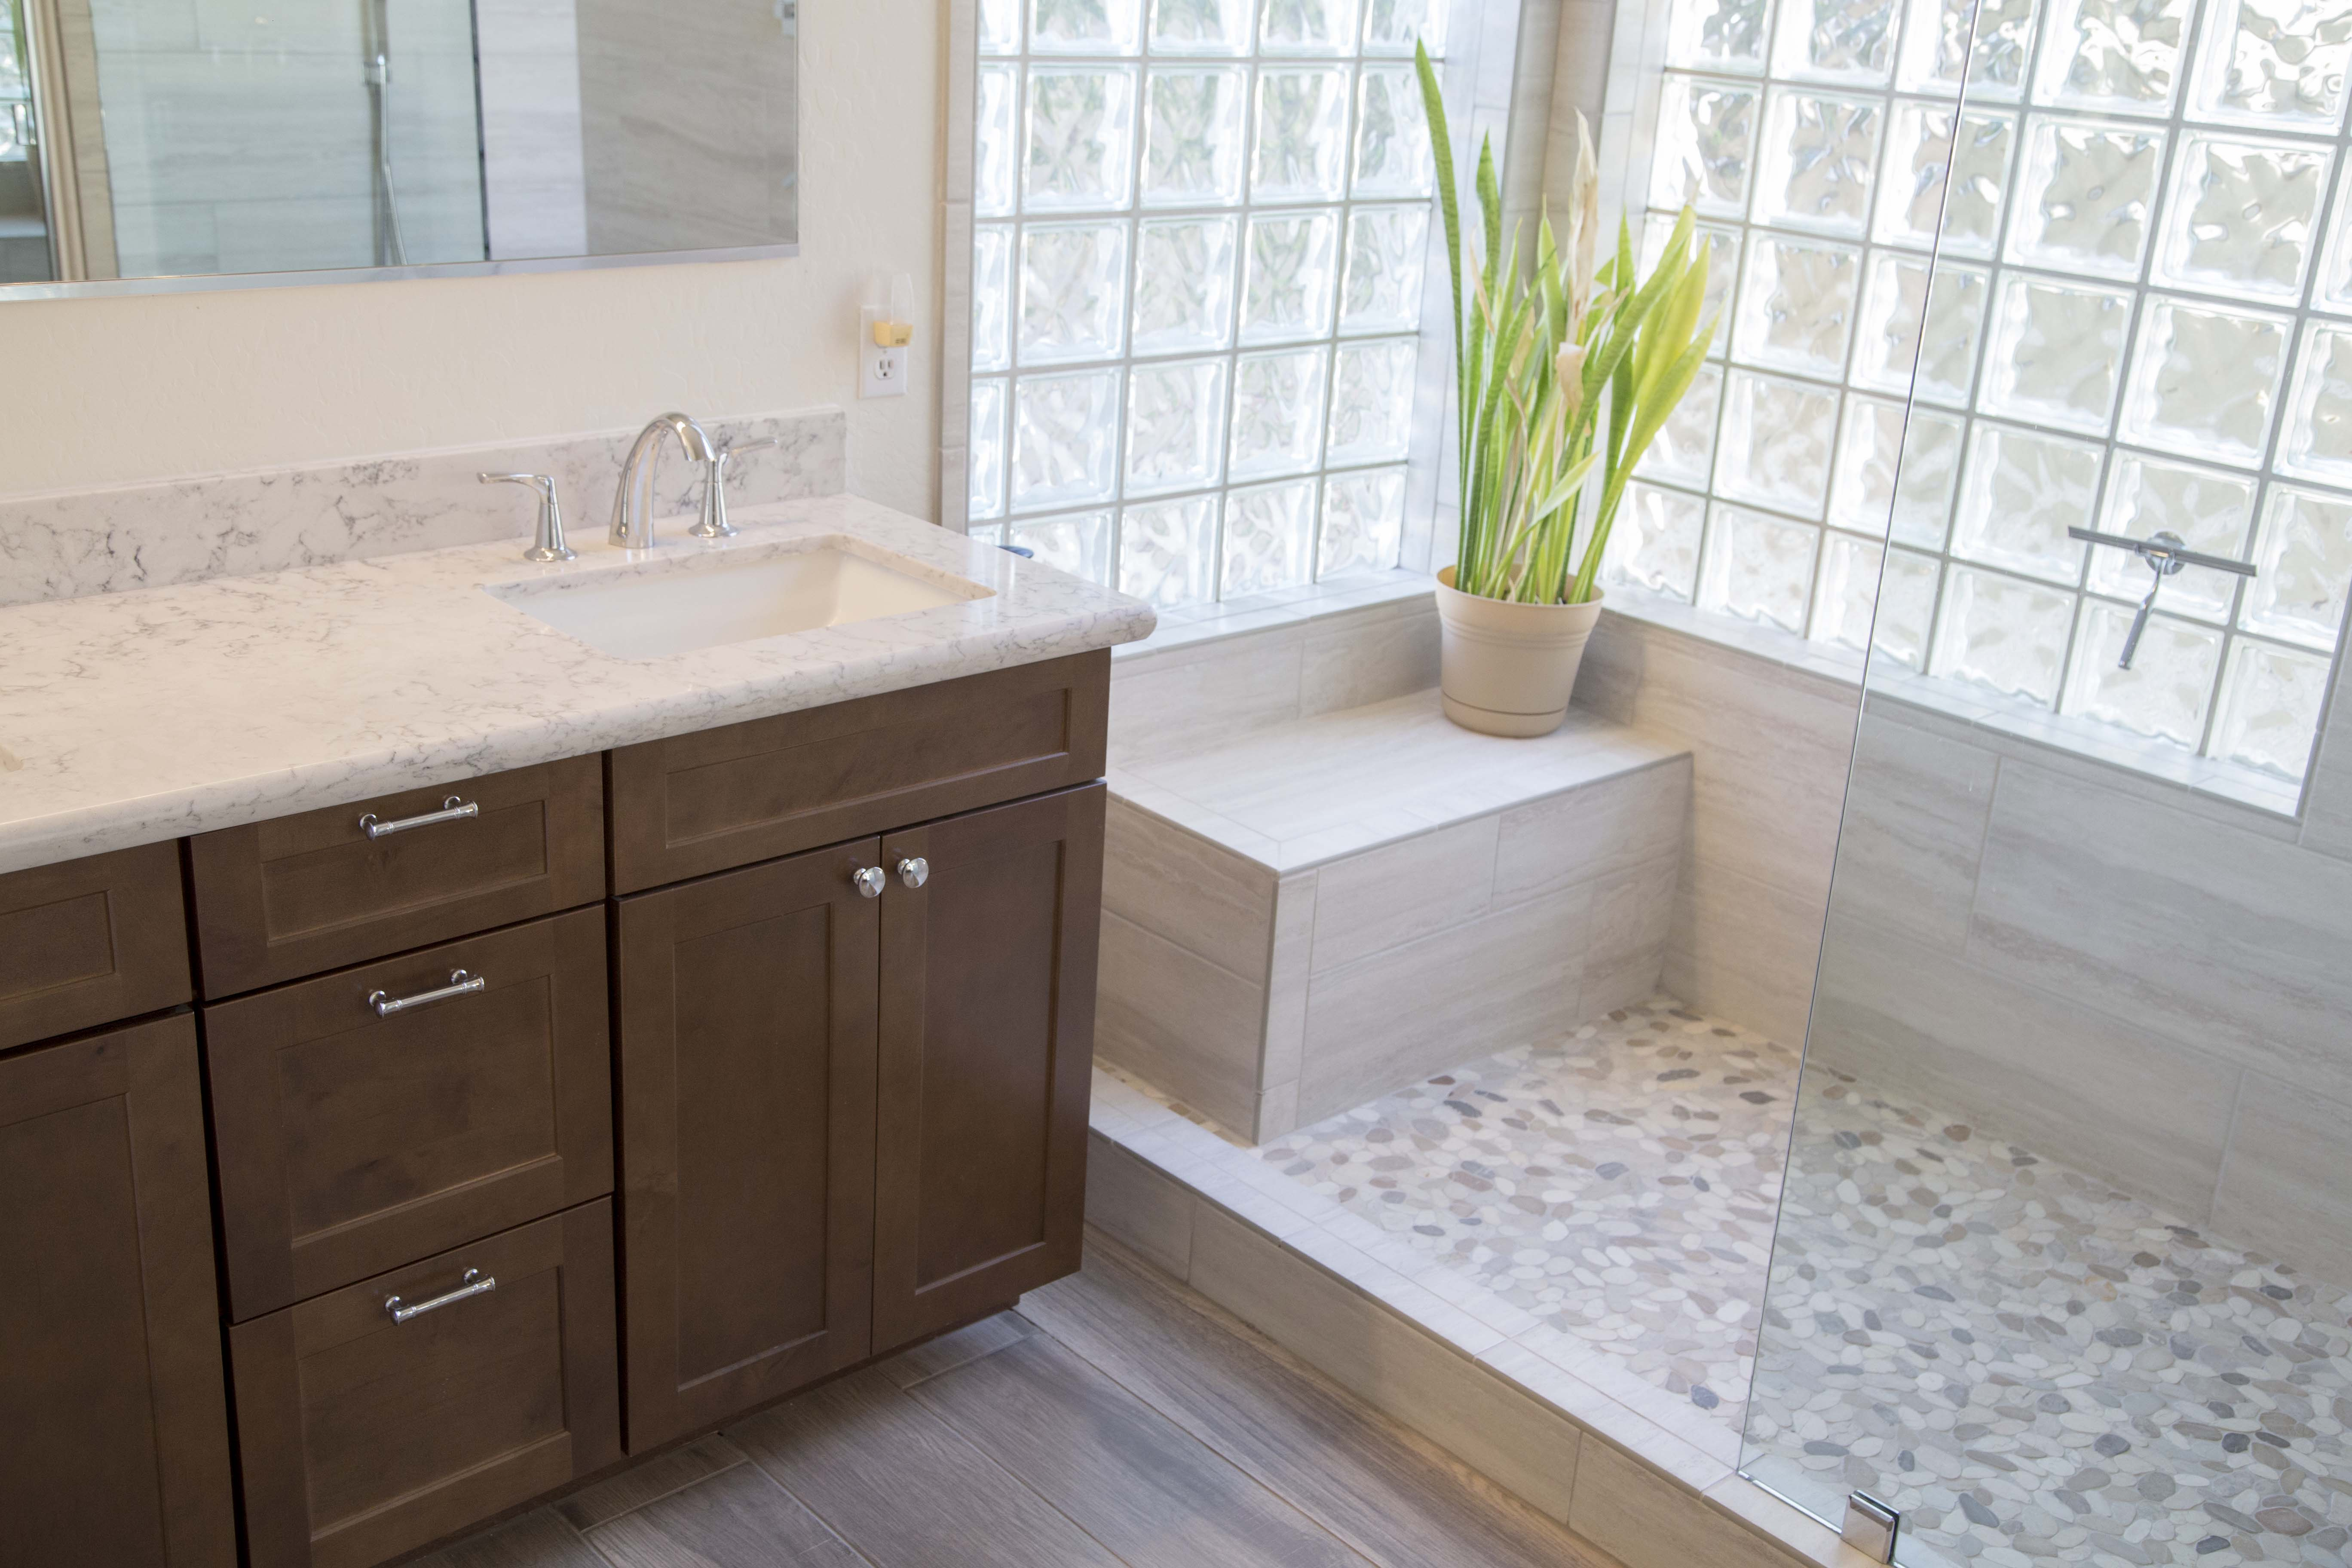 Bathroom Remodeling Services In Phoenix Showers And Tubs